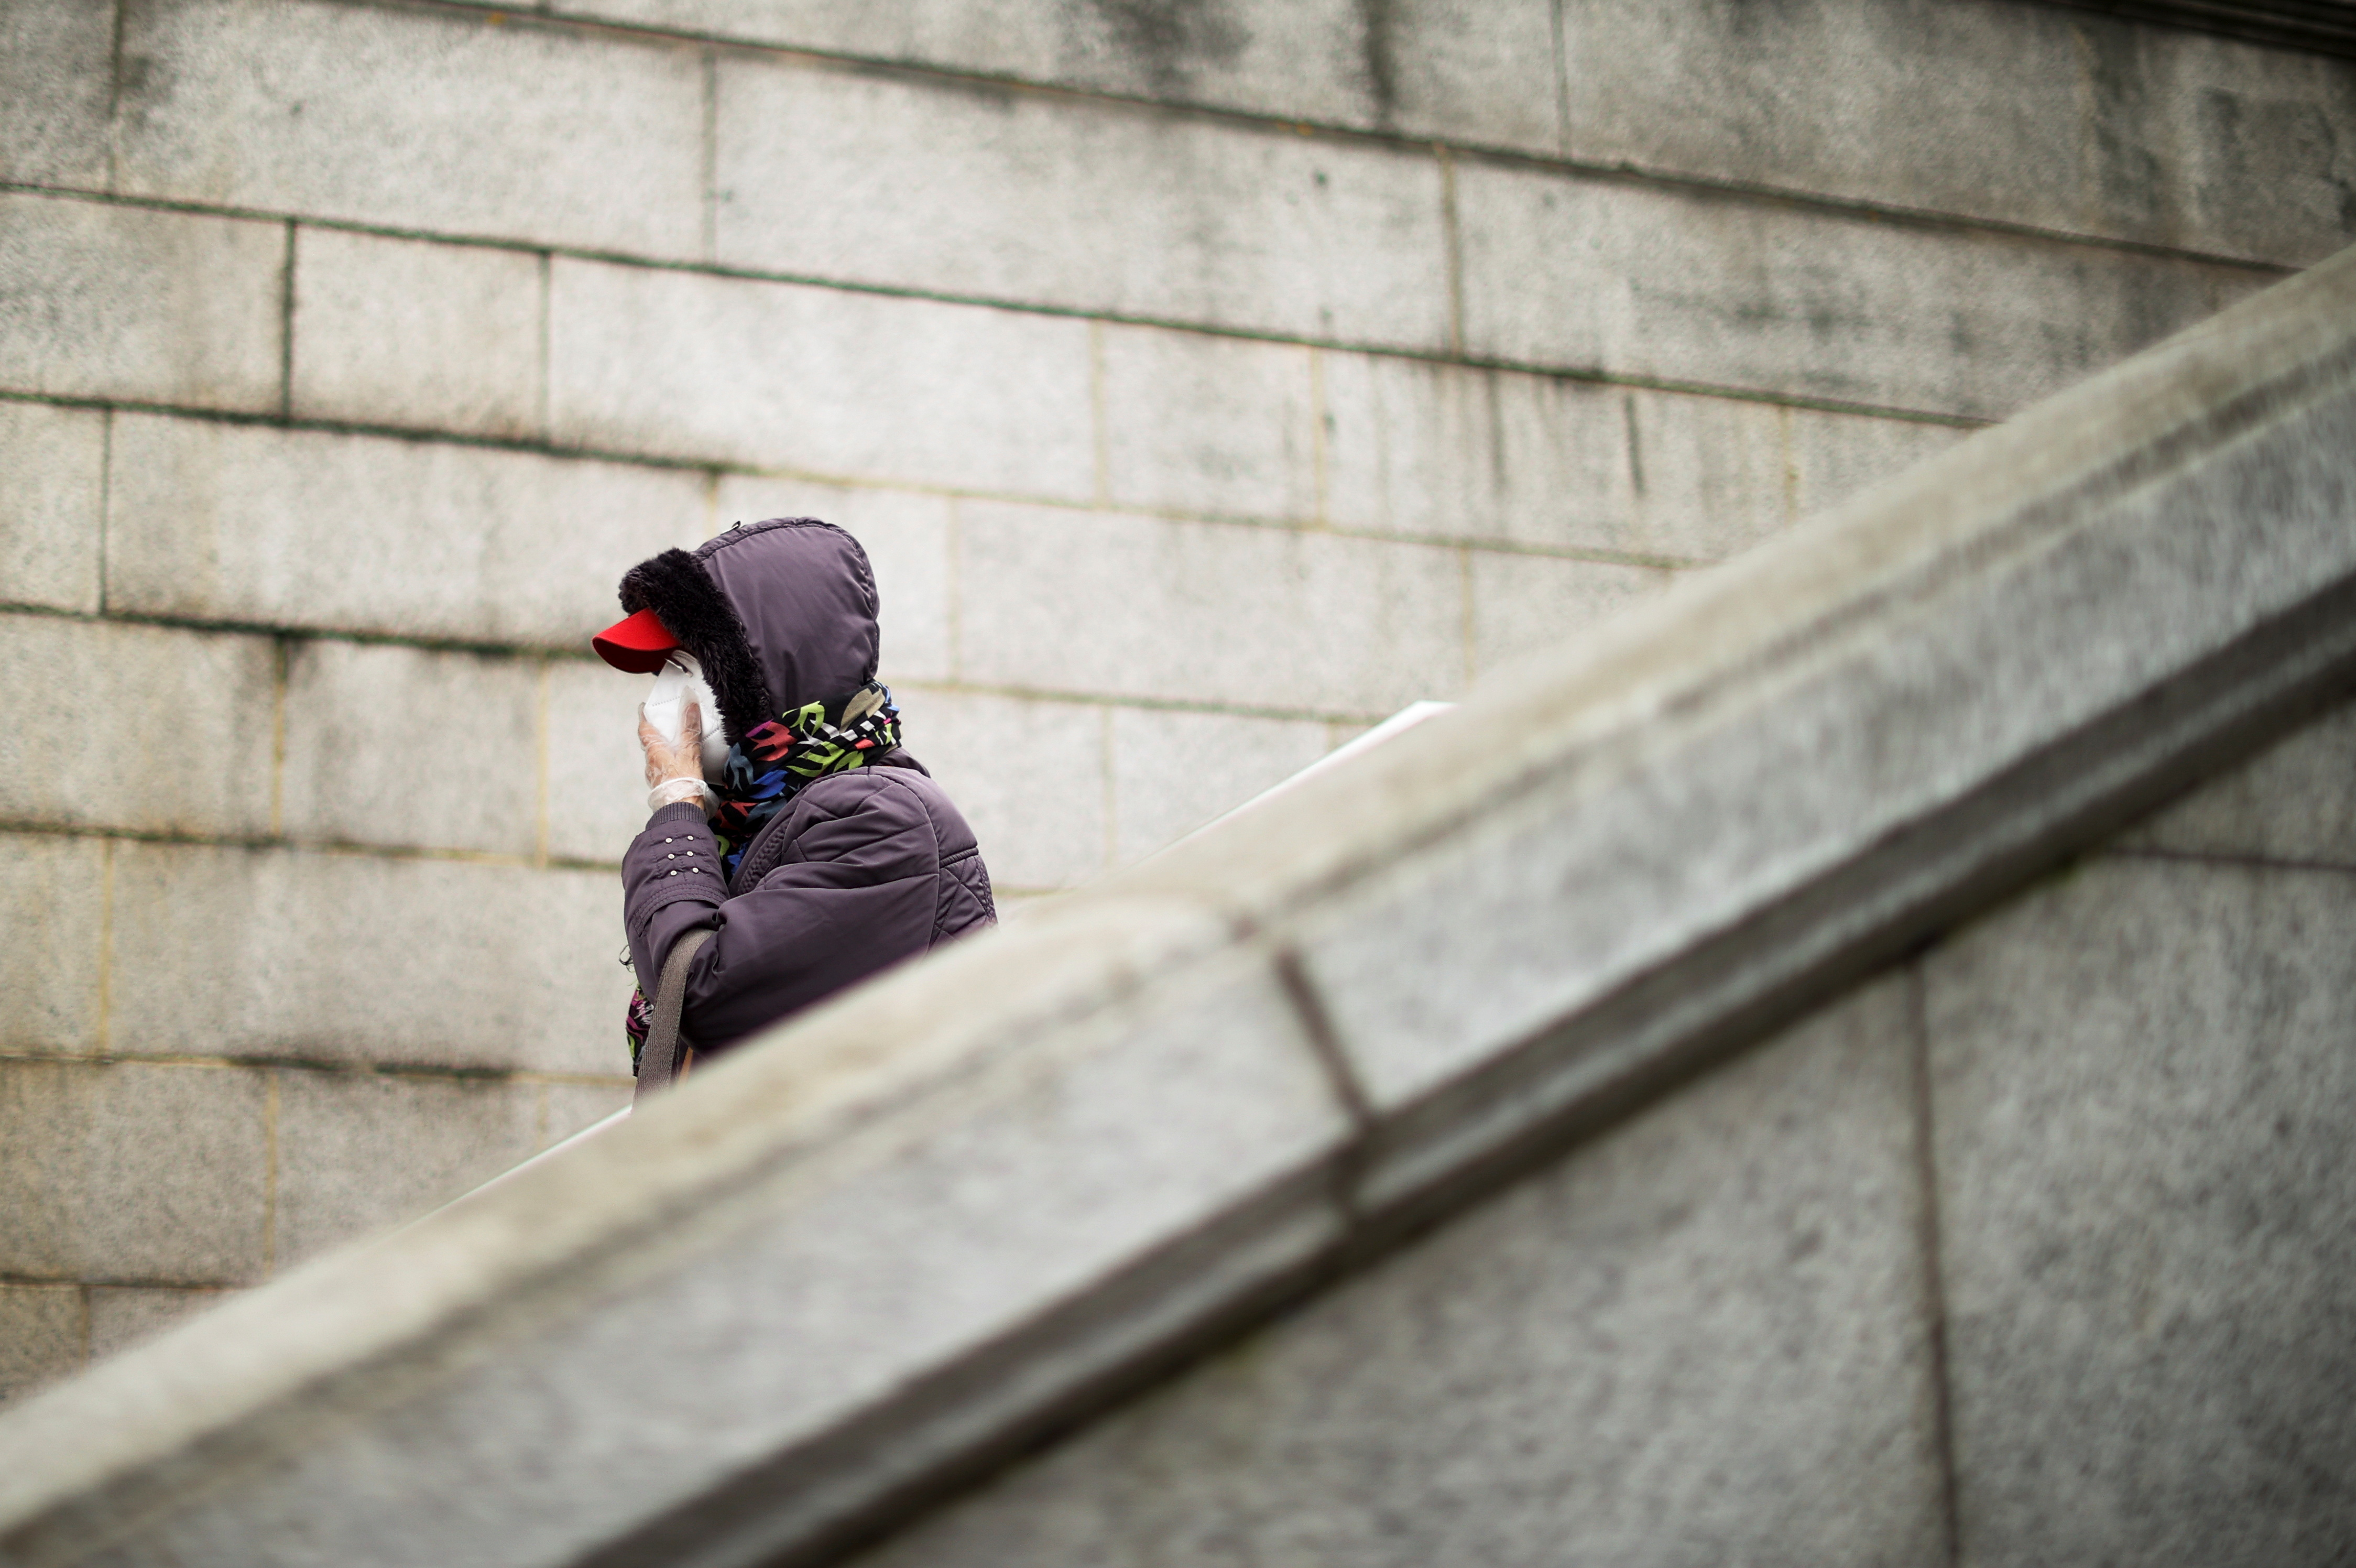 A person wearing a face mask and gloves walks down the stairs, amid the coronavirus disease (COVID-19) outbreak, in London, Britain February 22, 2021. REUTERS/Hannah McKay